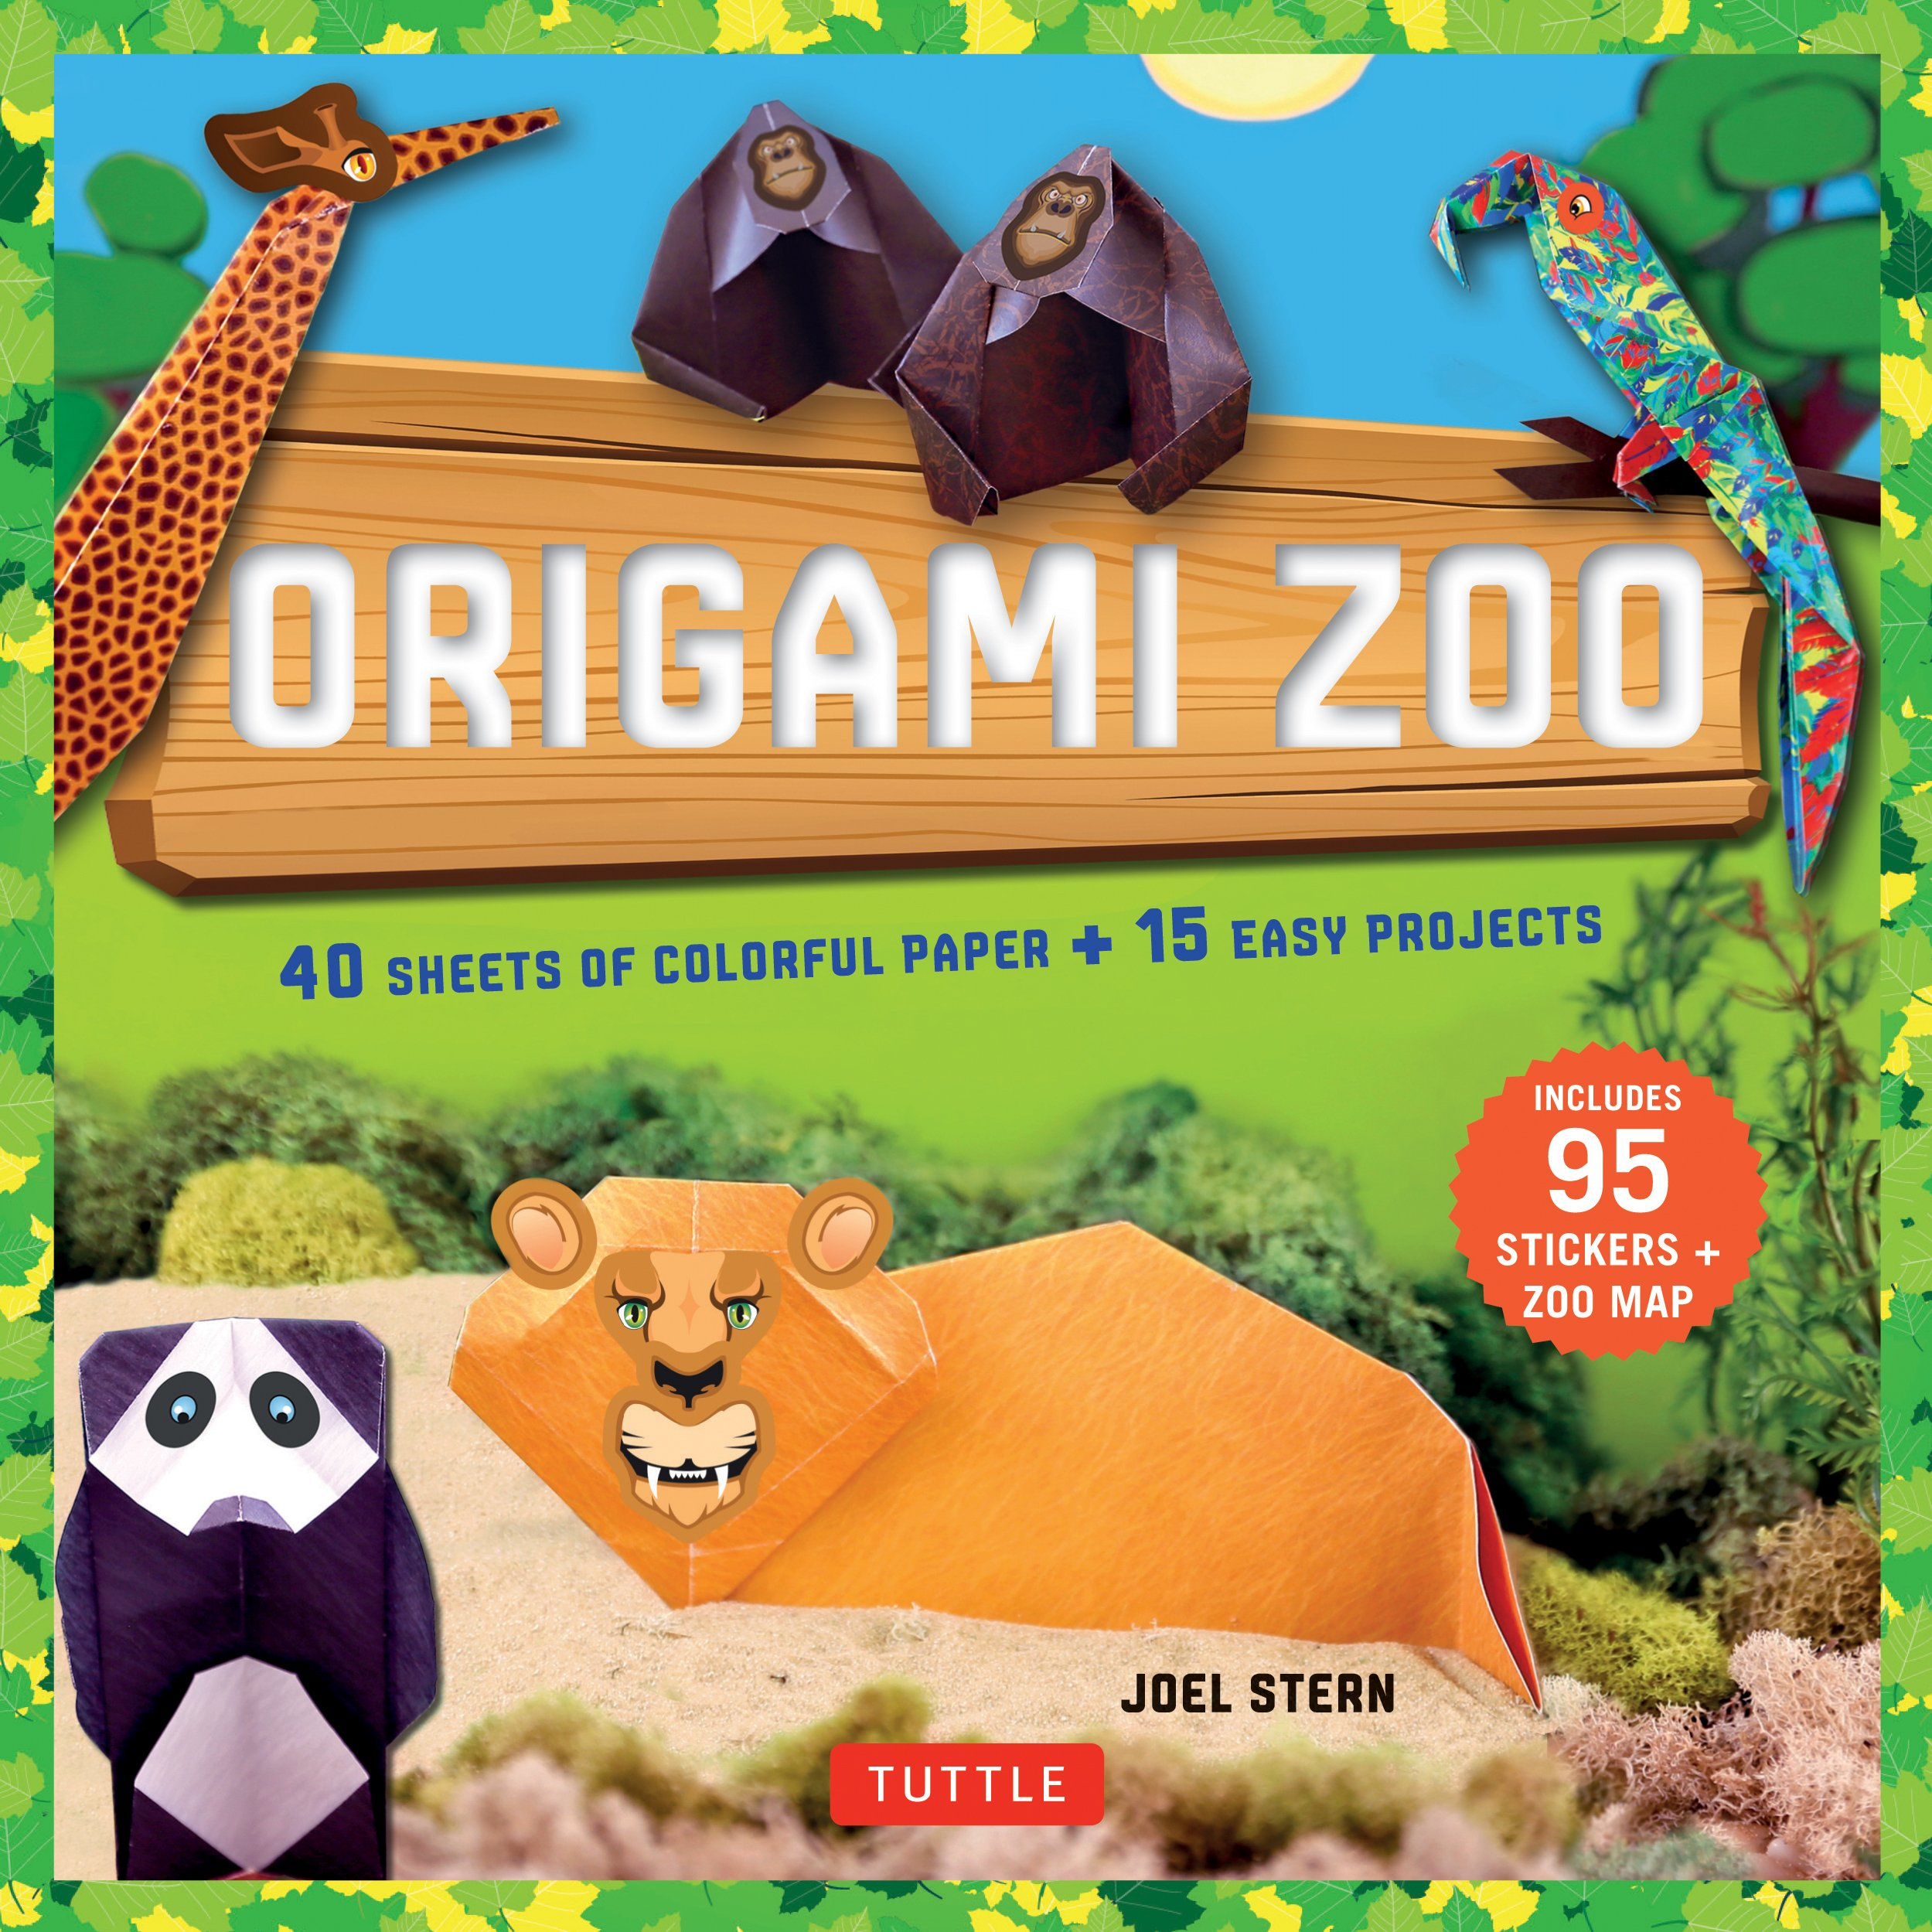 Origami Zoo Kit: Make a Complete Zoo of Origami Animals!: Kit with Origami Book, 15 Projects, 40 Origami Papers, 95 Stickers & Fold-Out Zoo Map Paperback – March 22, 2016 Joel Stern Tuttle Publishing 0804846219 Animals - General